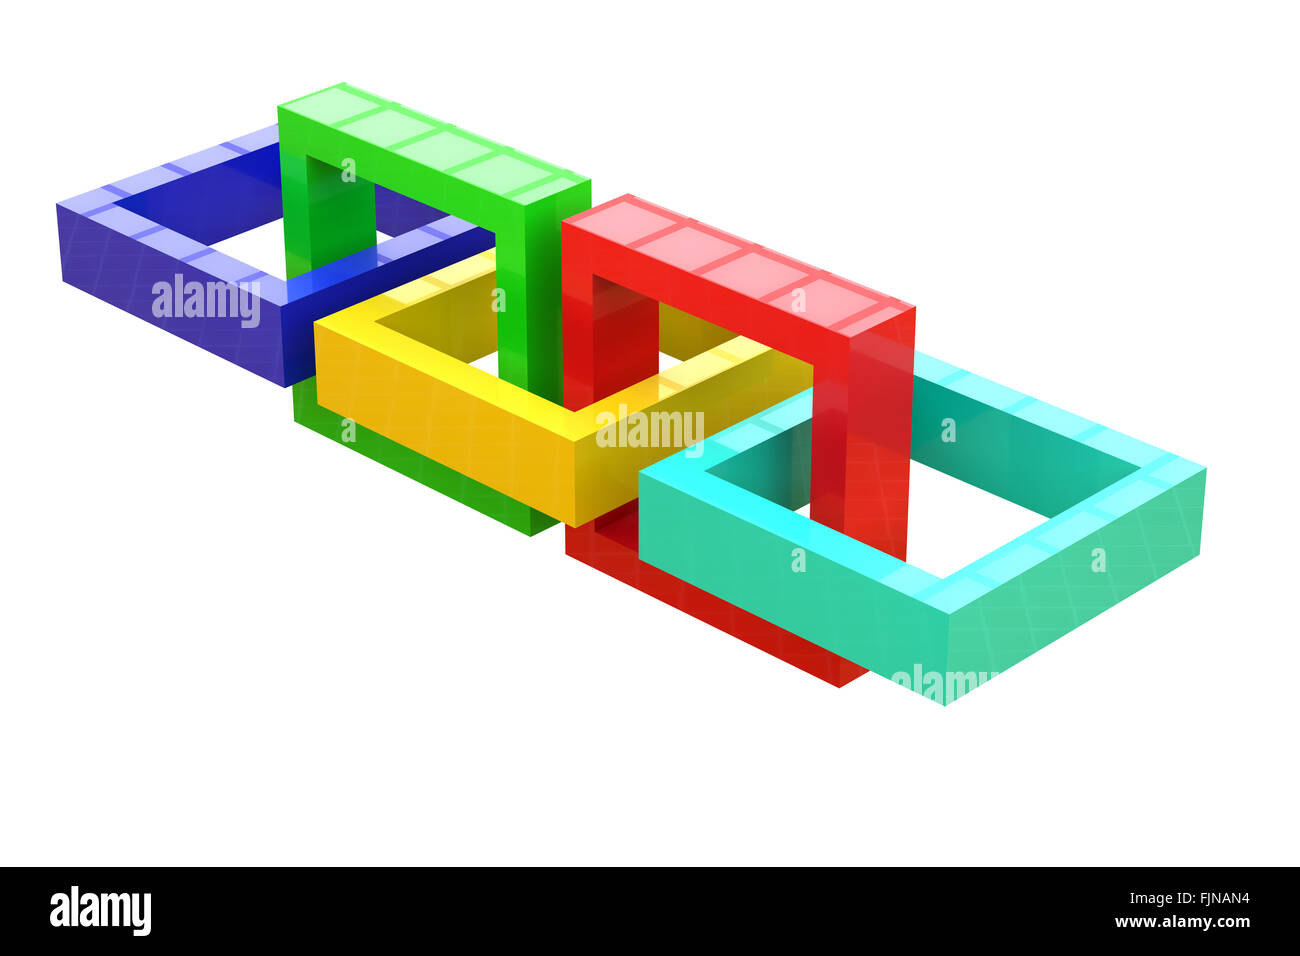 3d rendering of a close-up of three-dimensional linked squares of different colors. White background, isolated - Stock Image